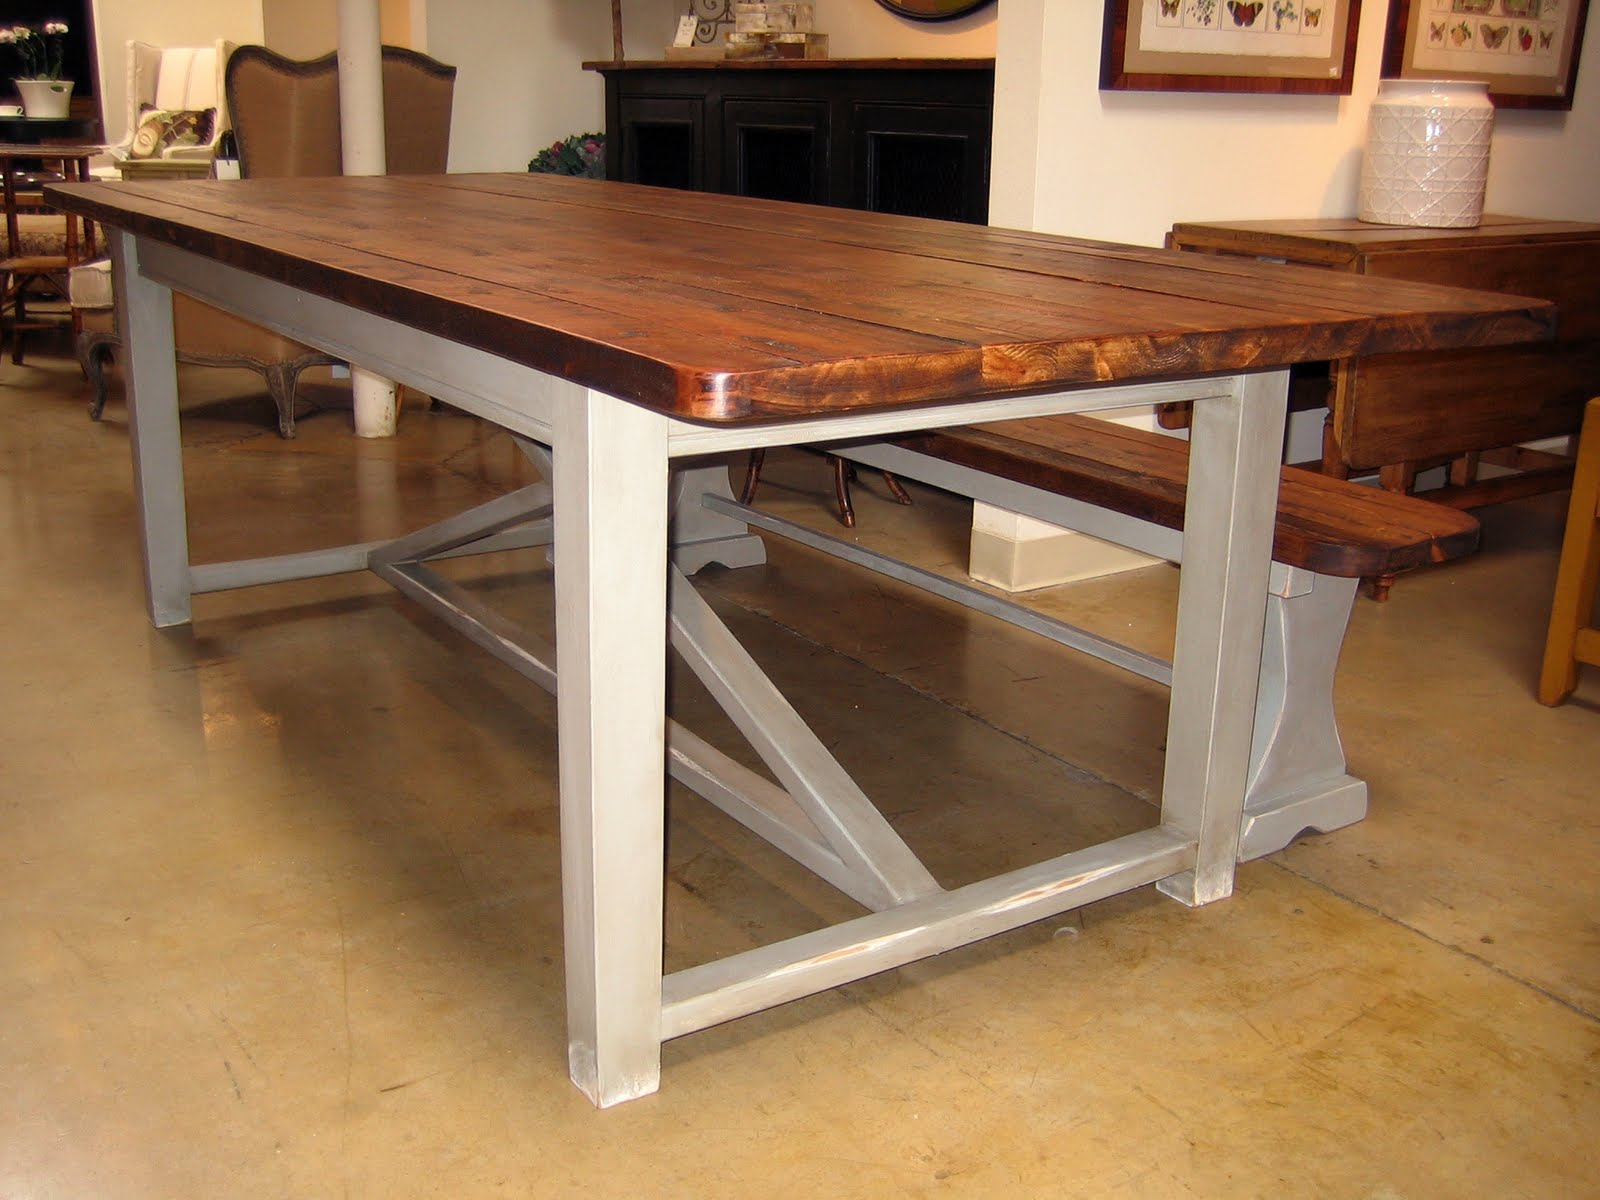 Farmhouse Table Company New Trestle Table And Benches Farmhouse Table Company